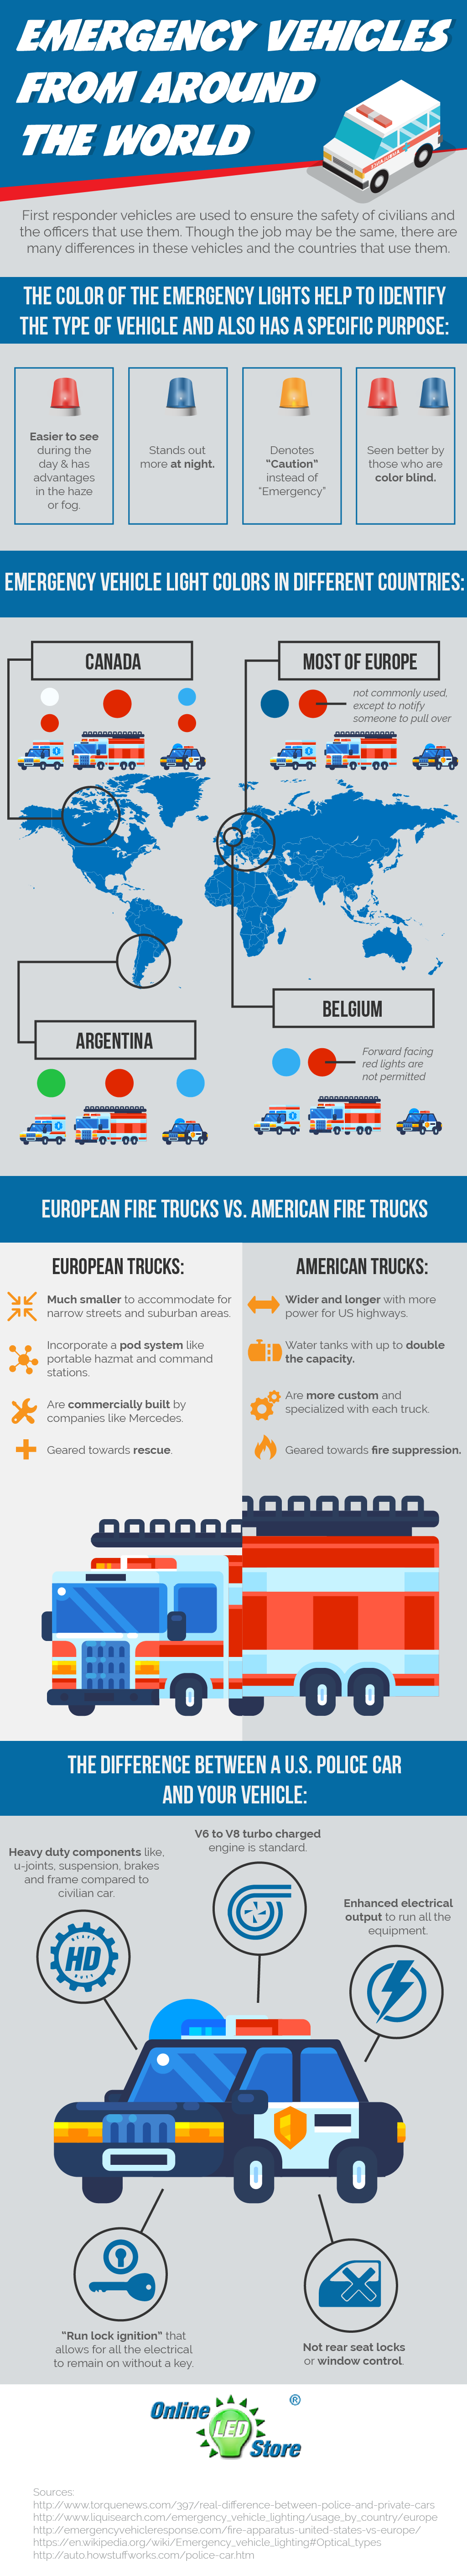 Emergency Vehicles from Around the World